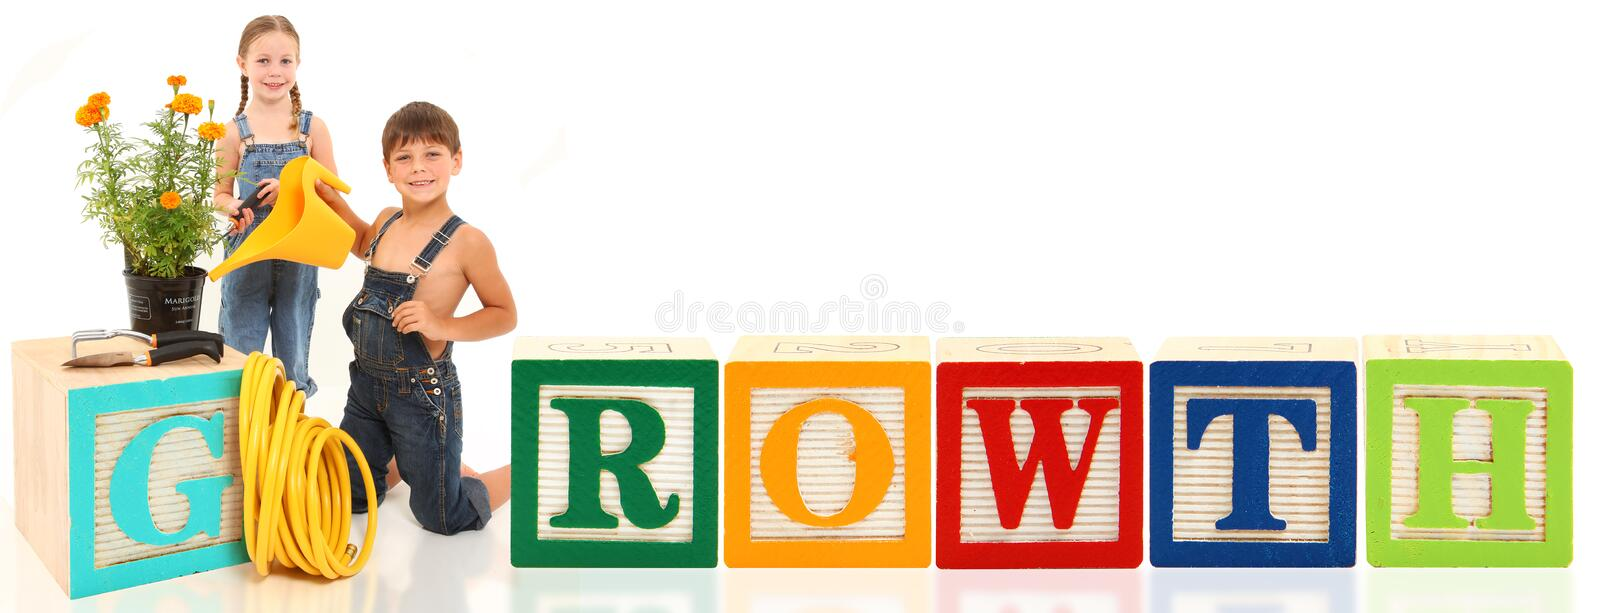 Download Boy Girl Growth stock photo. Image of block, background - 15119150